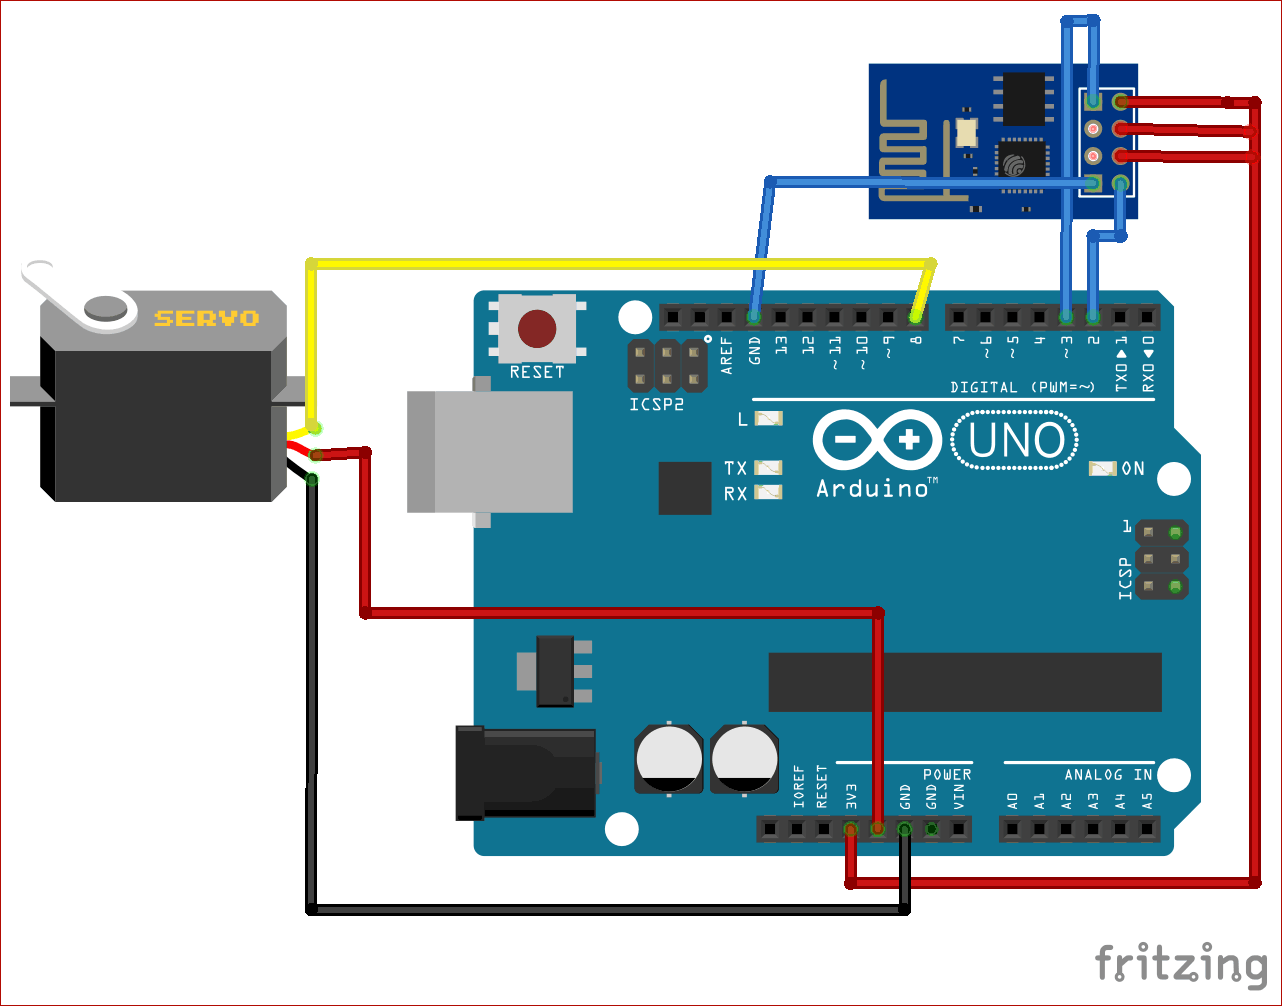 Circuit Diagram for ESP8266 Based Webserver to Control Servo Motor from Webpage